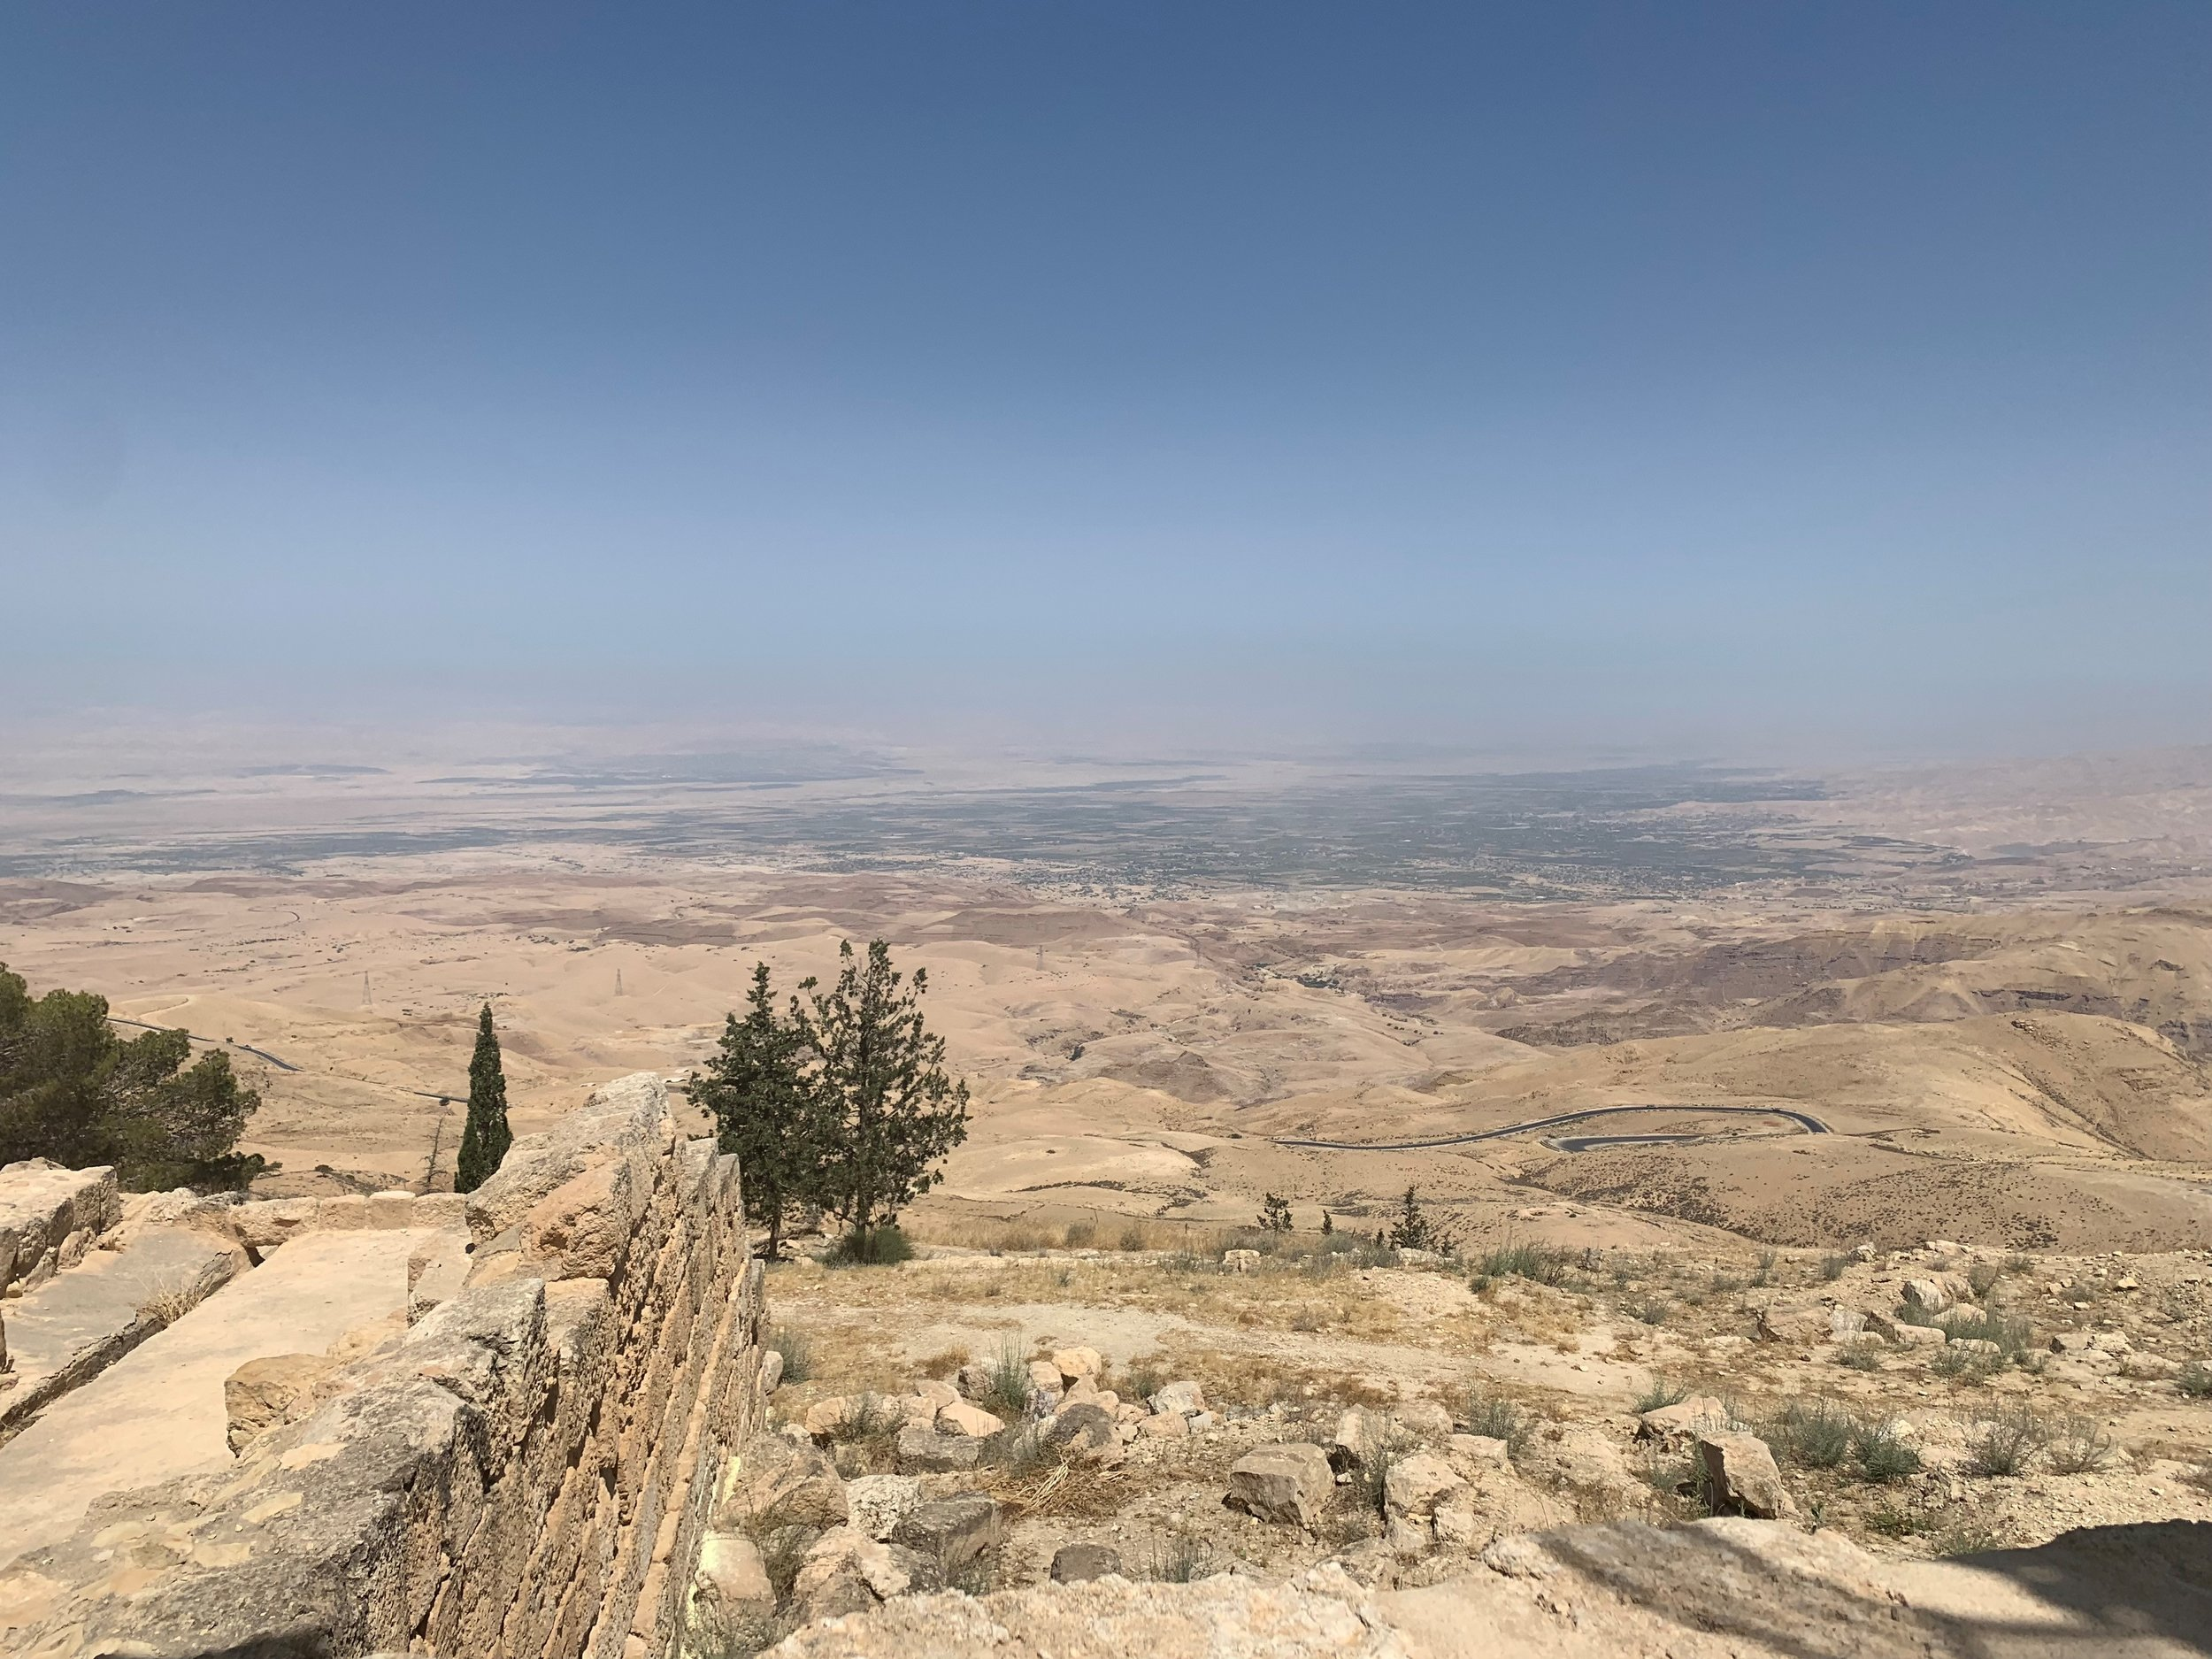 Mt. Nebo. A view I wish to see every time I close my eyes. According to some scriptures, this was where Moses saw the Promised Land before he died. There are a plethora of olive trees and shady spots for when you're elevated in the heat! Photo credit: Russo, 2019